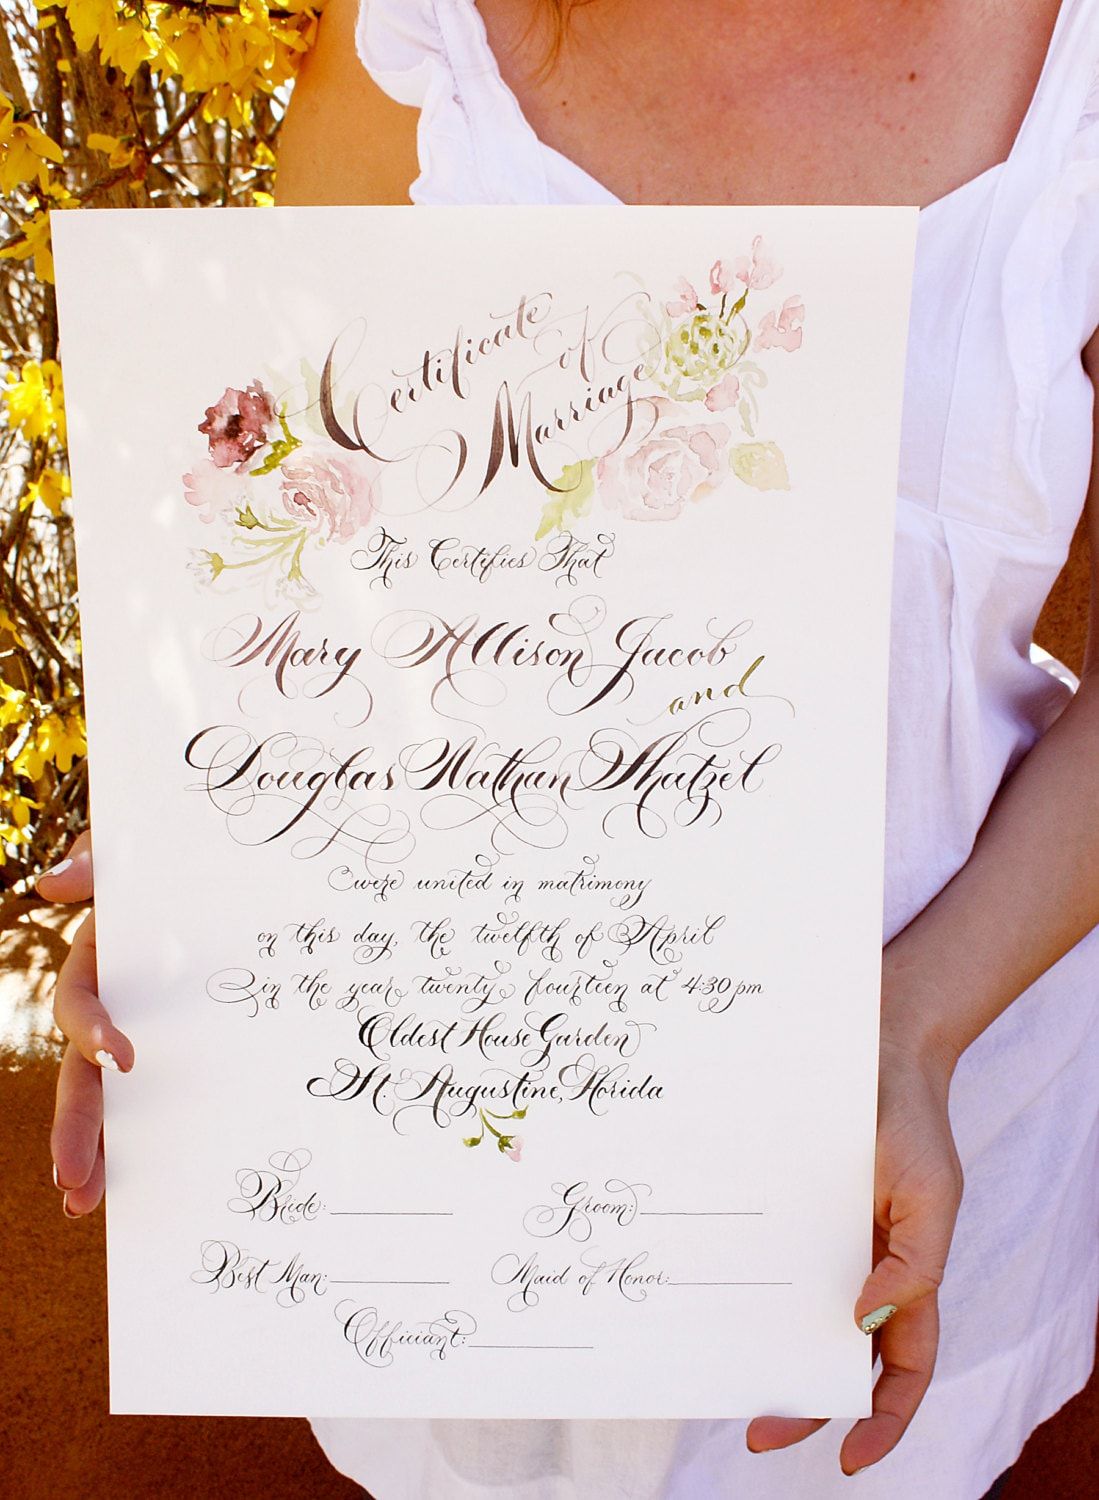 certificate marriage calligraphy templates license printable sample watercolor painted template matrimonio certificado personalized unique section handfasting anniversary vendido producto